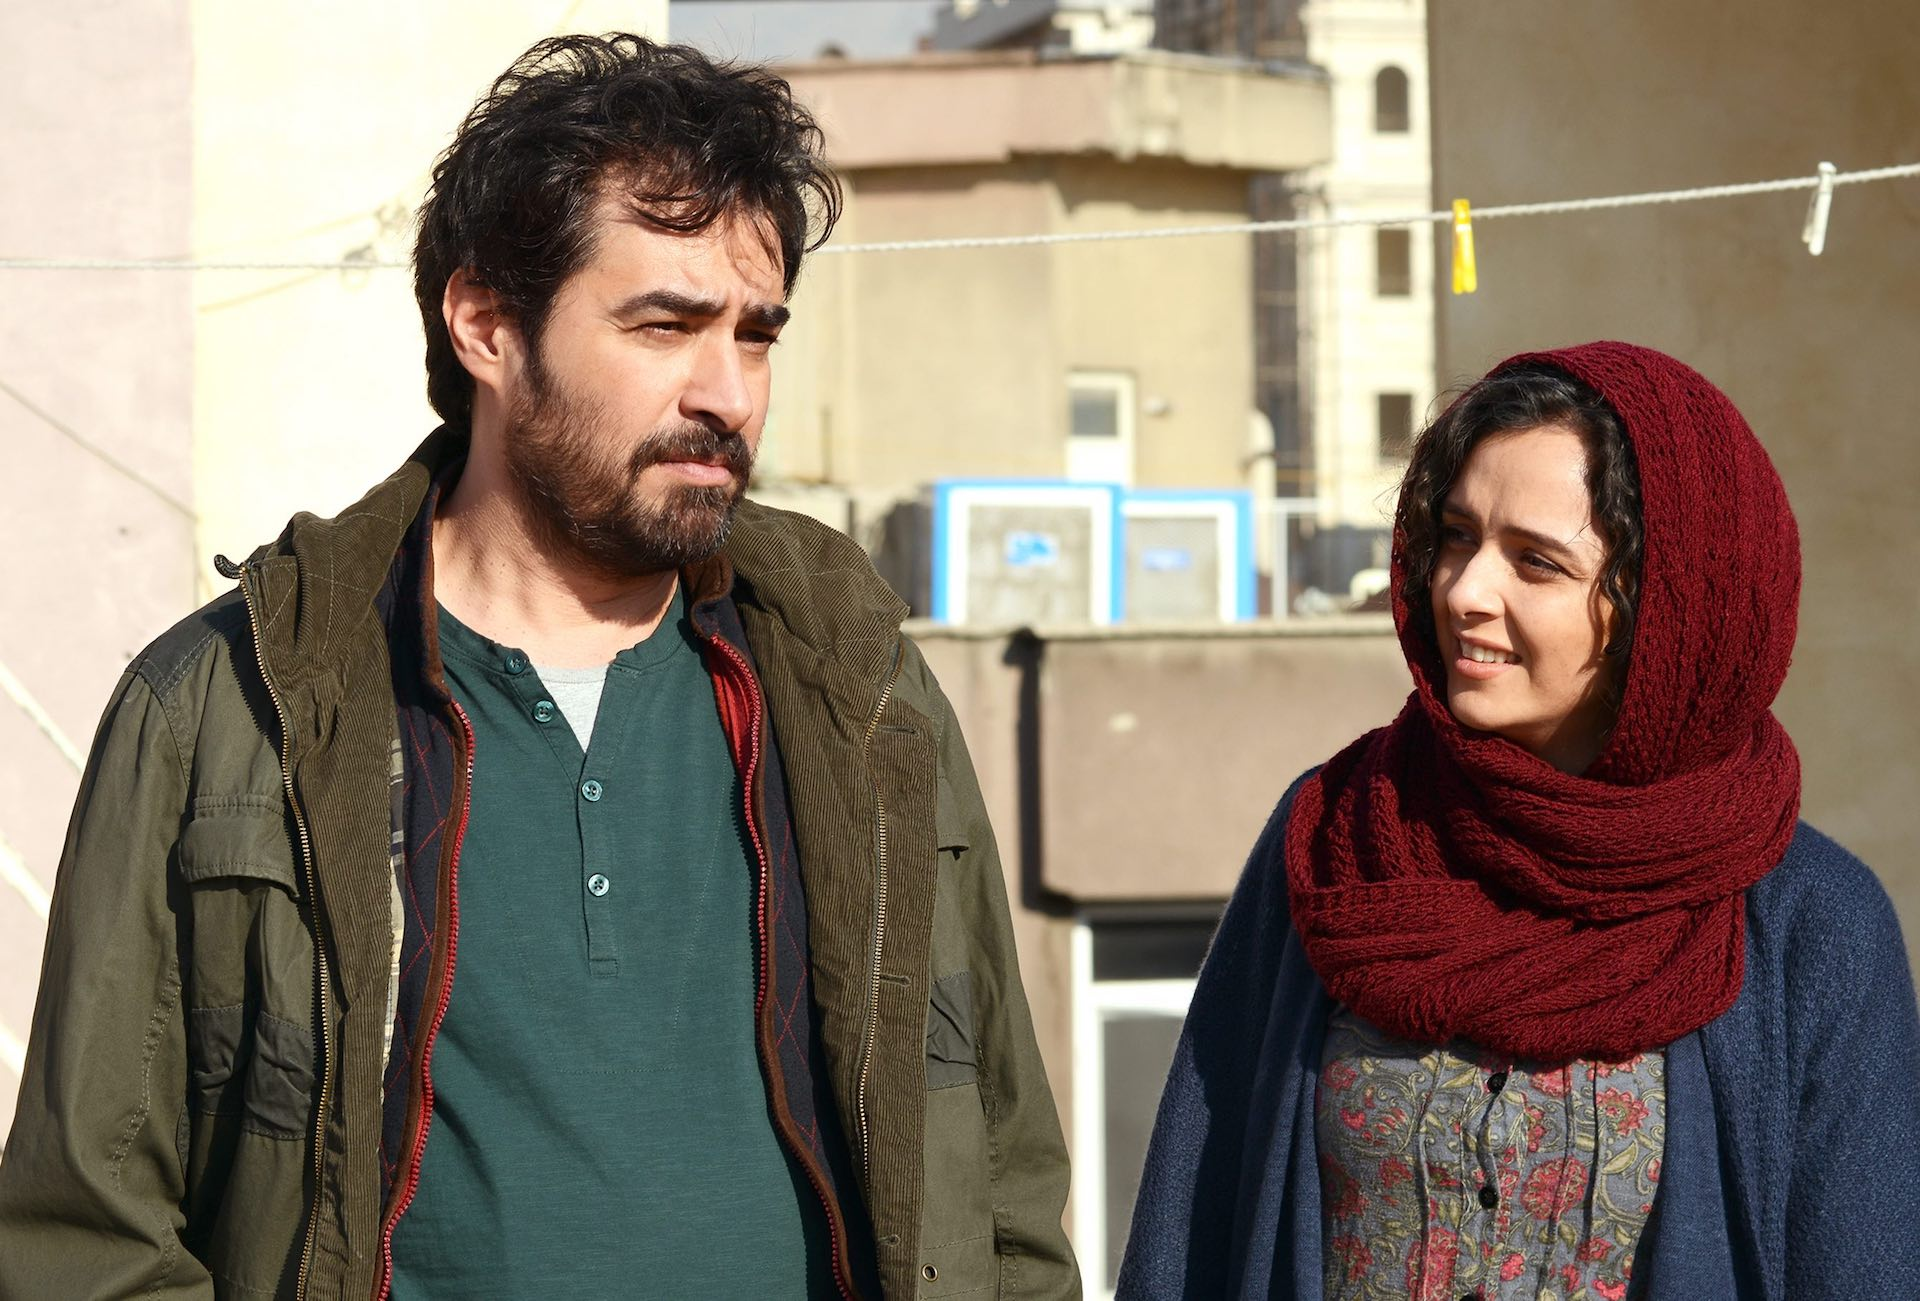 The Salesman Iran/France 2016